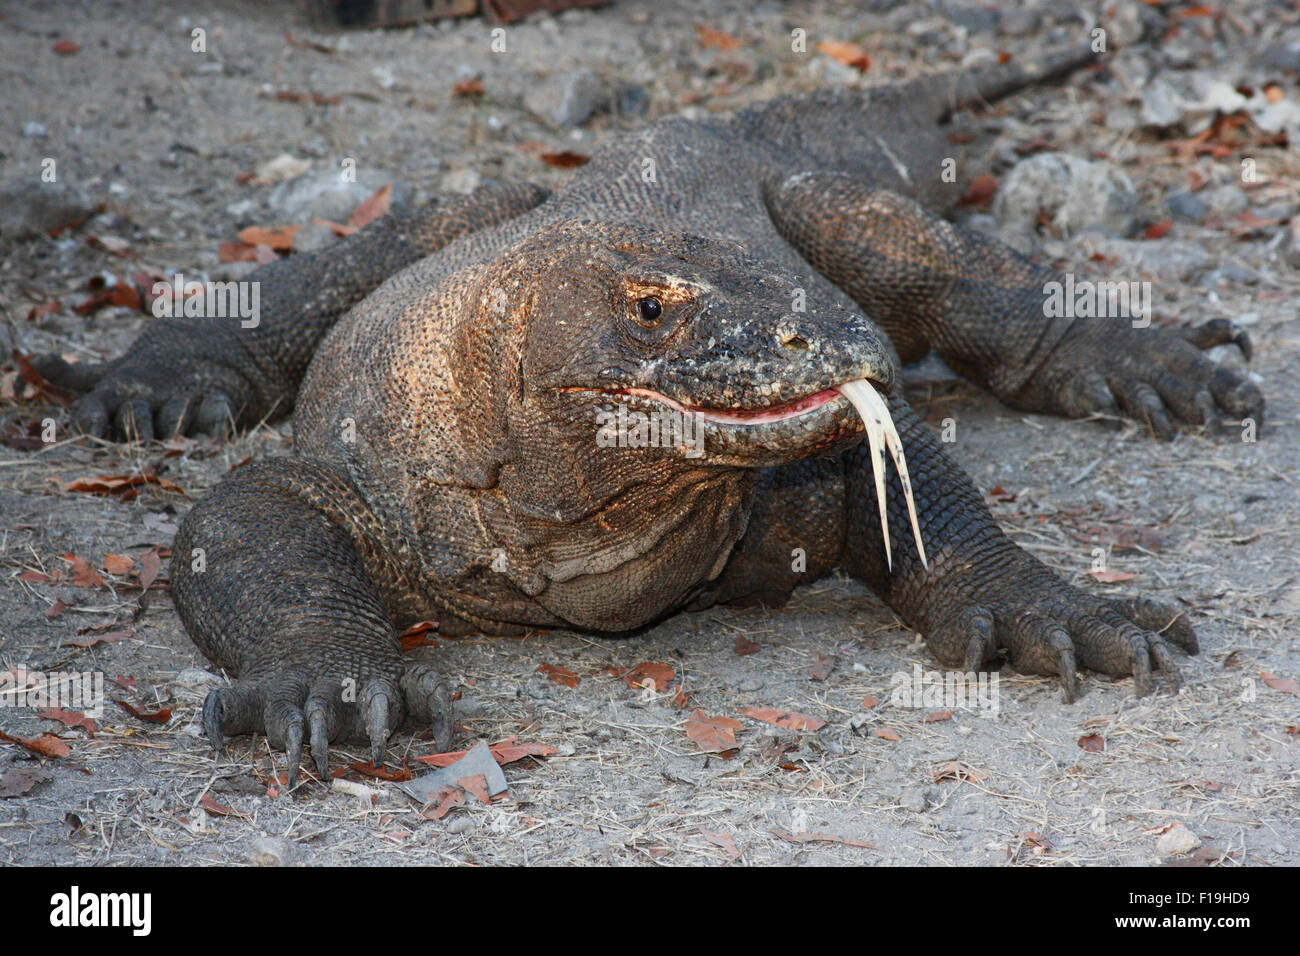 px72071-D. Komodo Dragon (Varanus komodensis), world's largest lizard. Saliva is full of bacteria which can - Stock Image